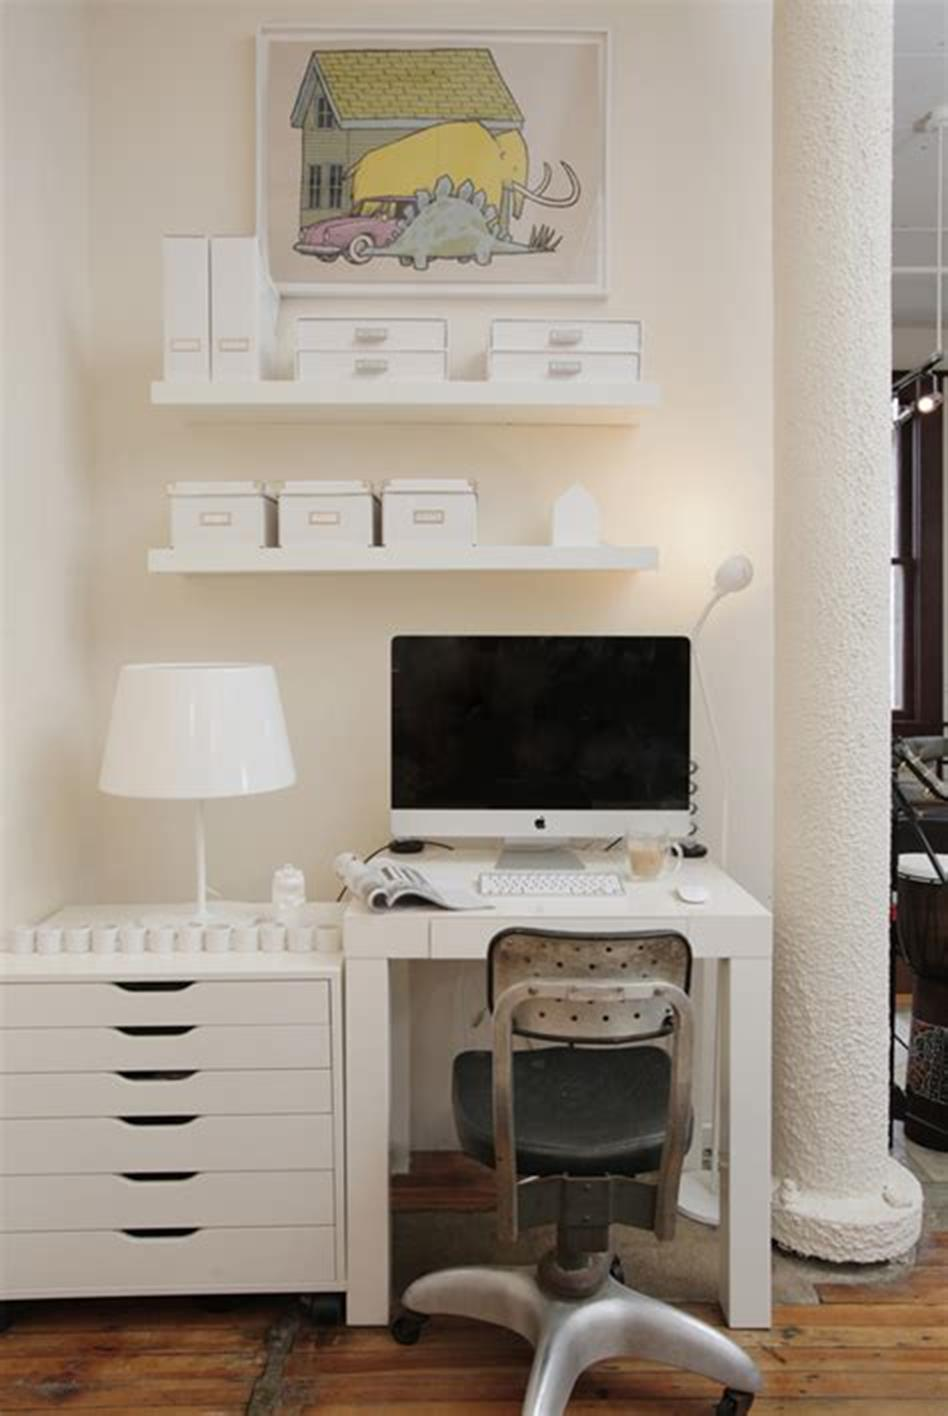 50 Best Small Space Office Decorating Ideas On a Budget 2019 19